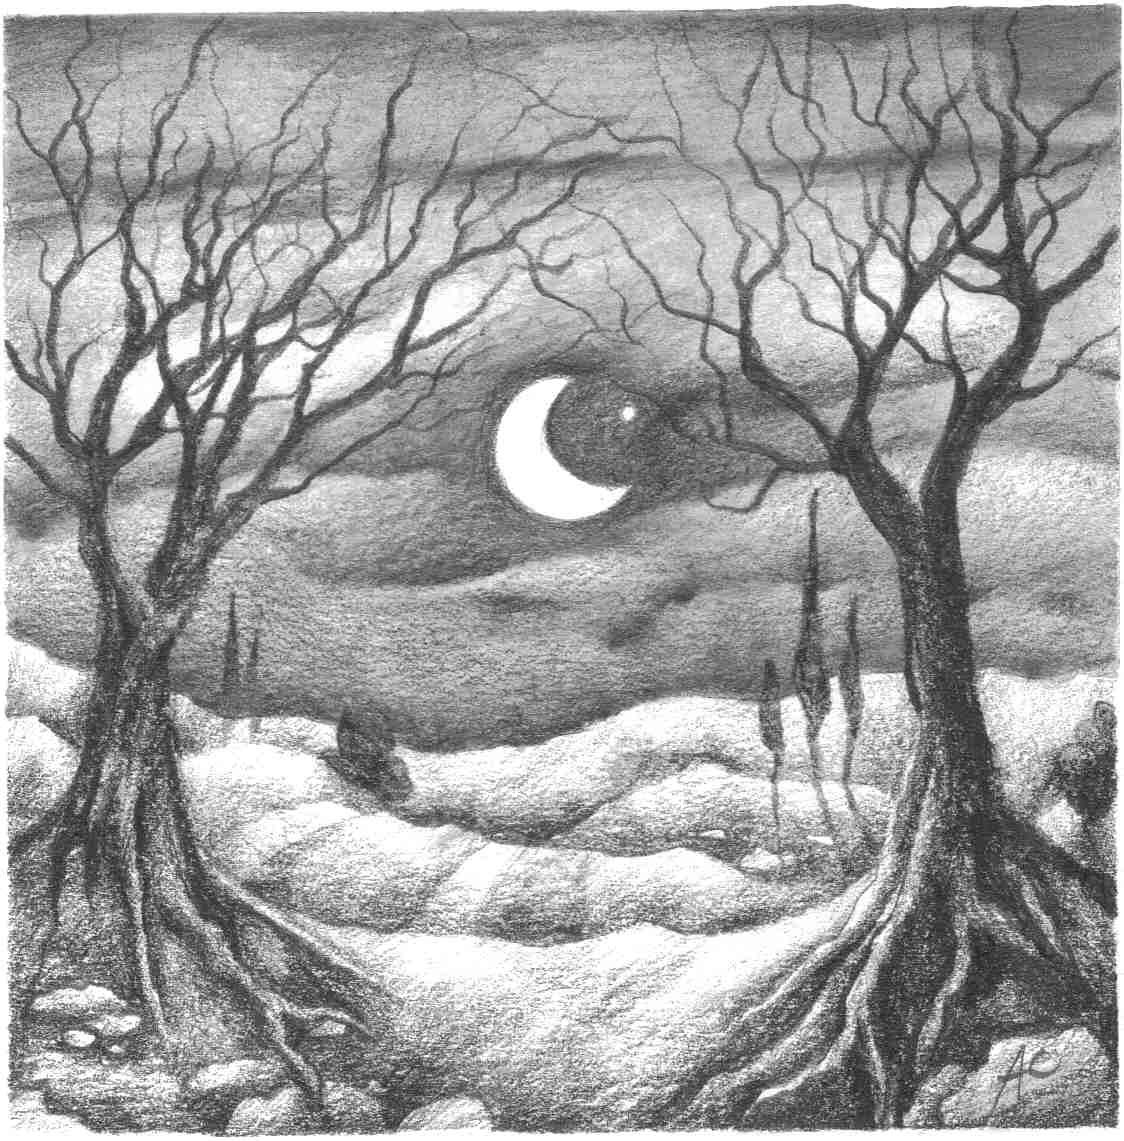 Beautiful Nature Pencil Drawings: Earth Angels Art. Art And Illustrations By Amanda Clark: A